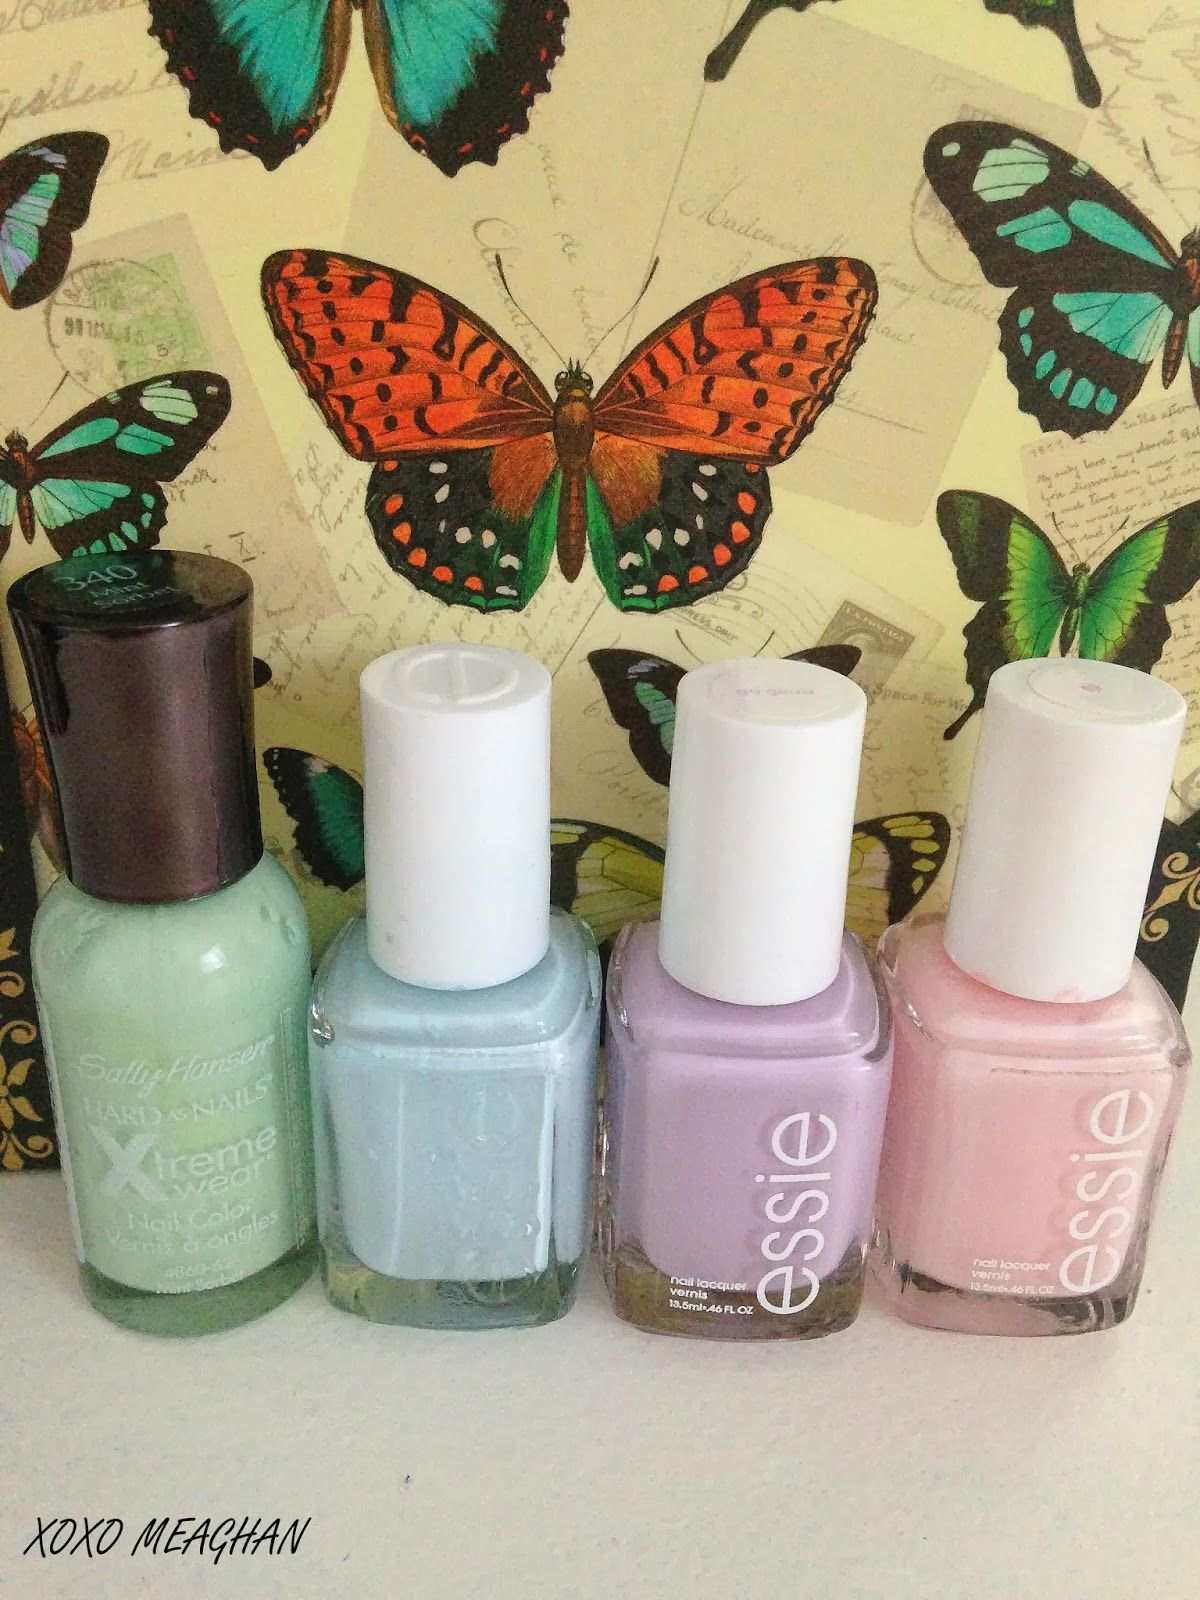 I Dream Of Pastels: Nail Polish! #essie #sallyhansen